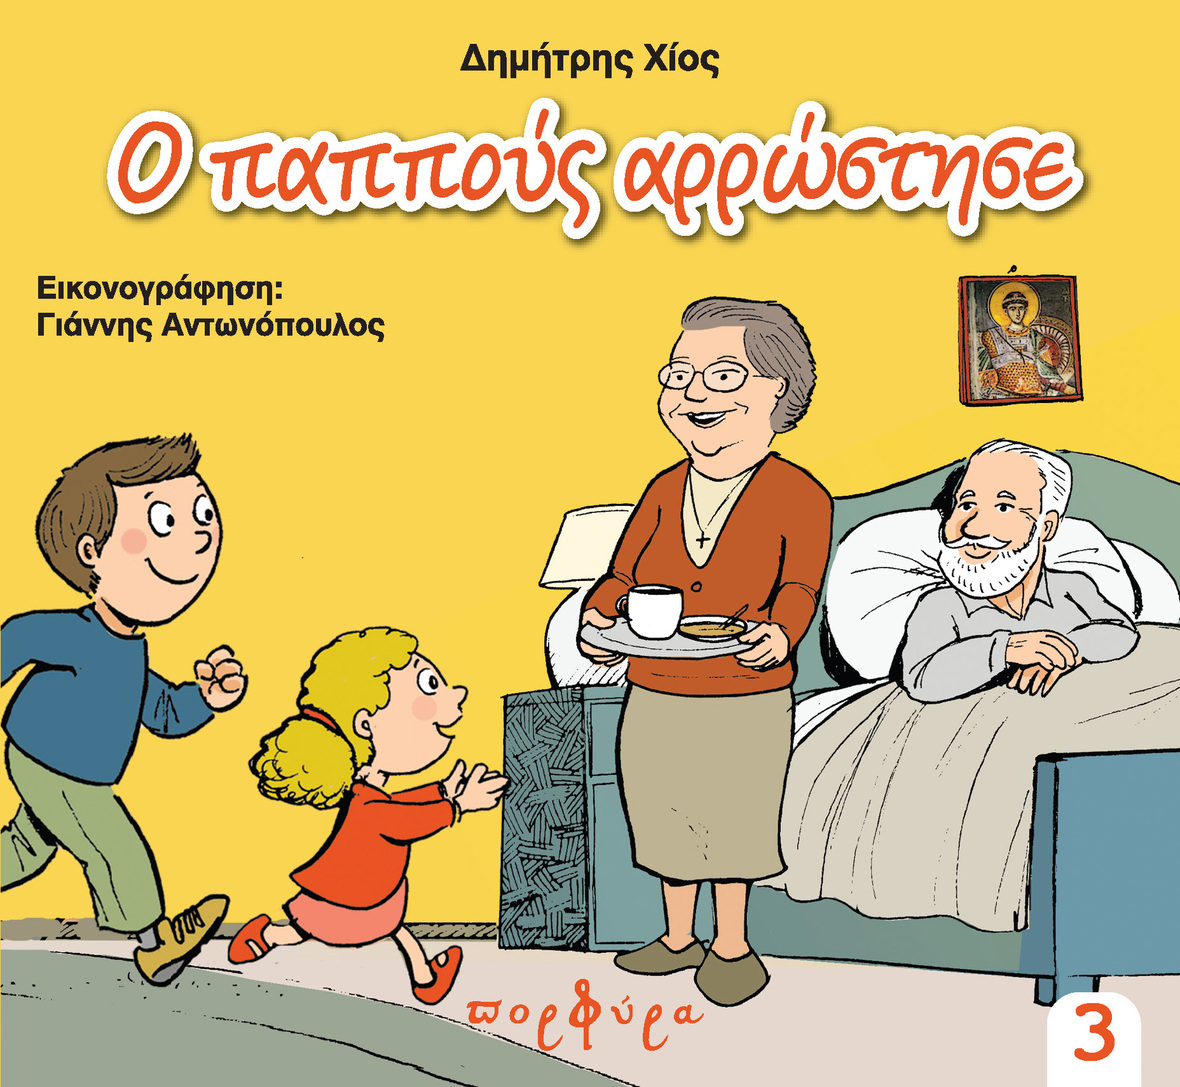 o pappous arostise